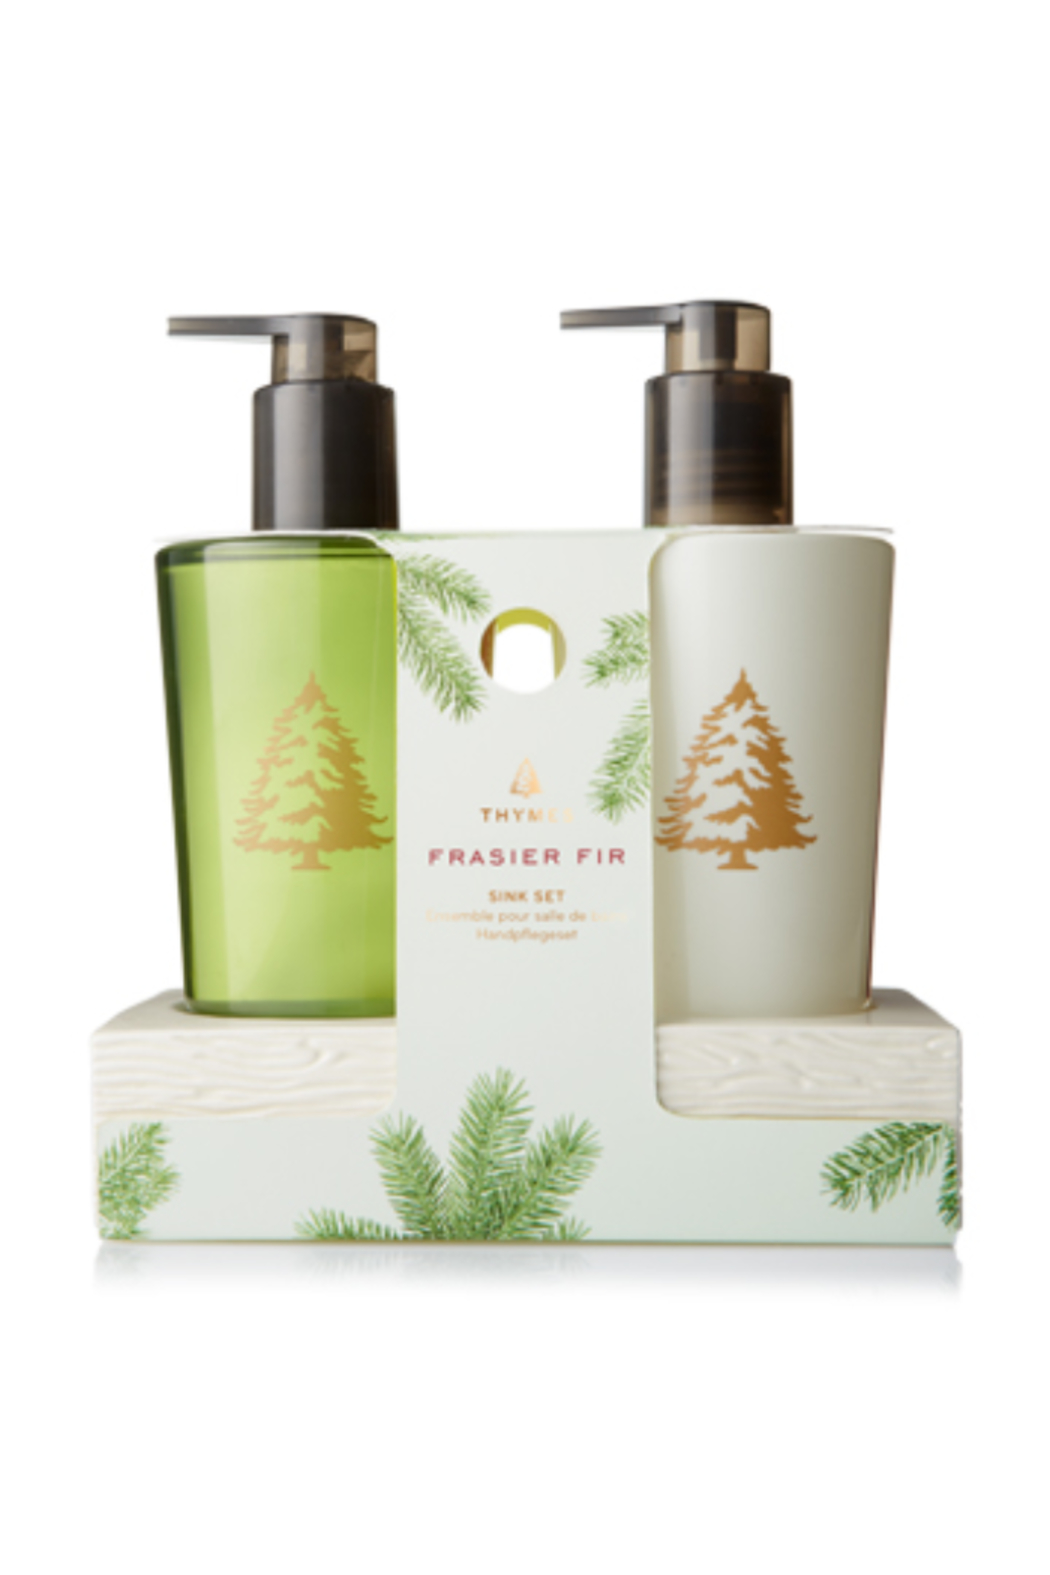 Thymes FRASIER FIR SINK SET WITH CERAMIC CADDY - Main Image